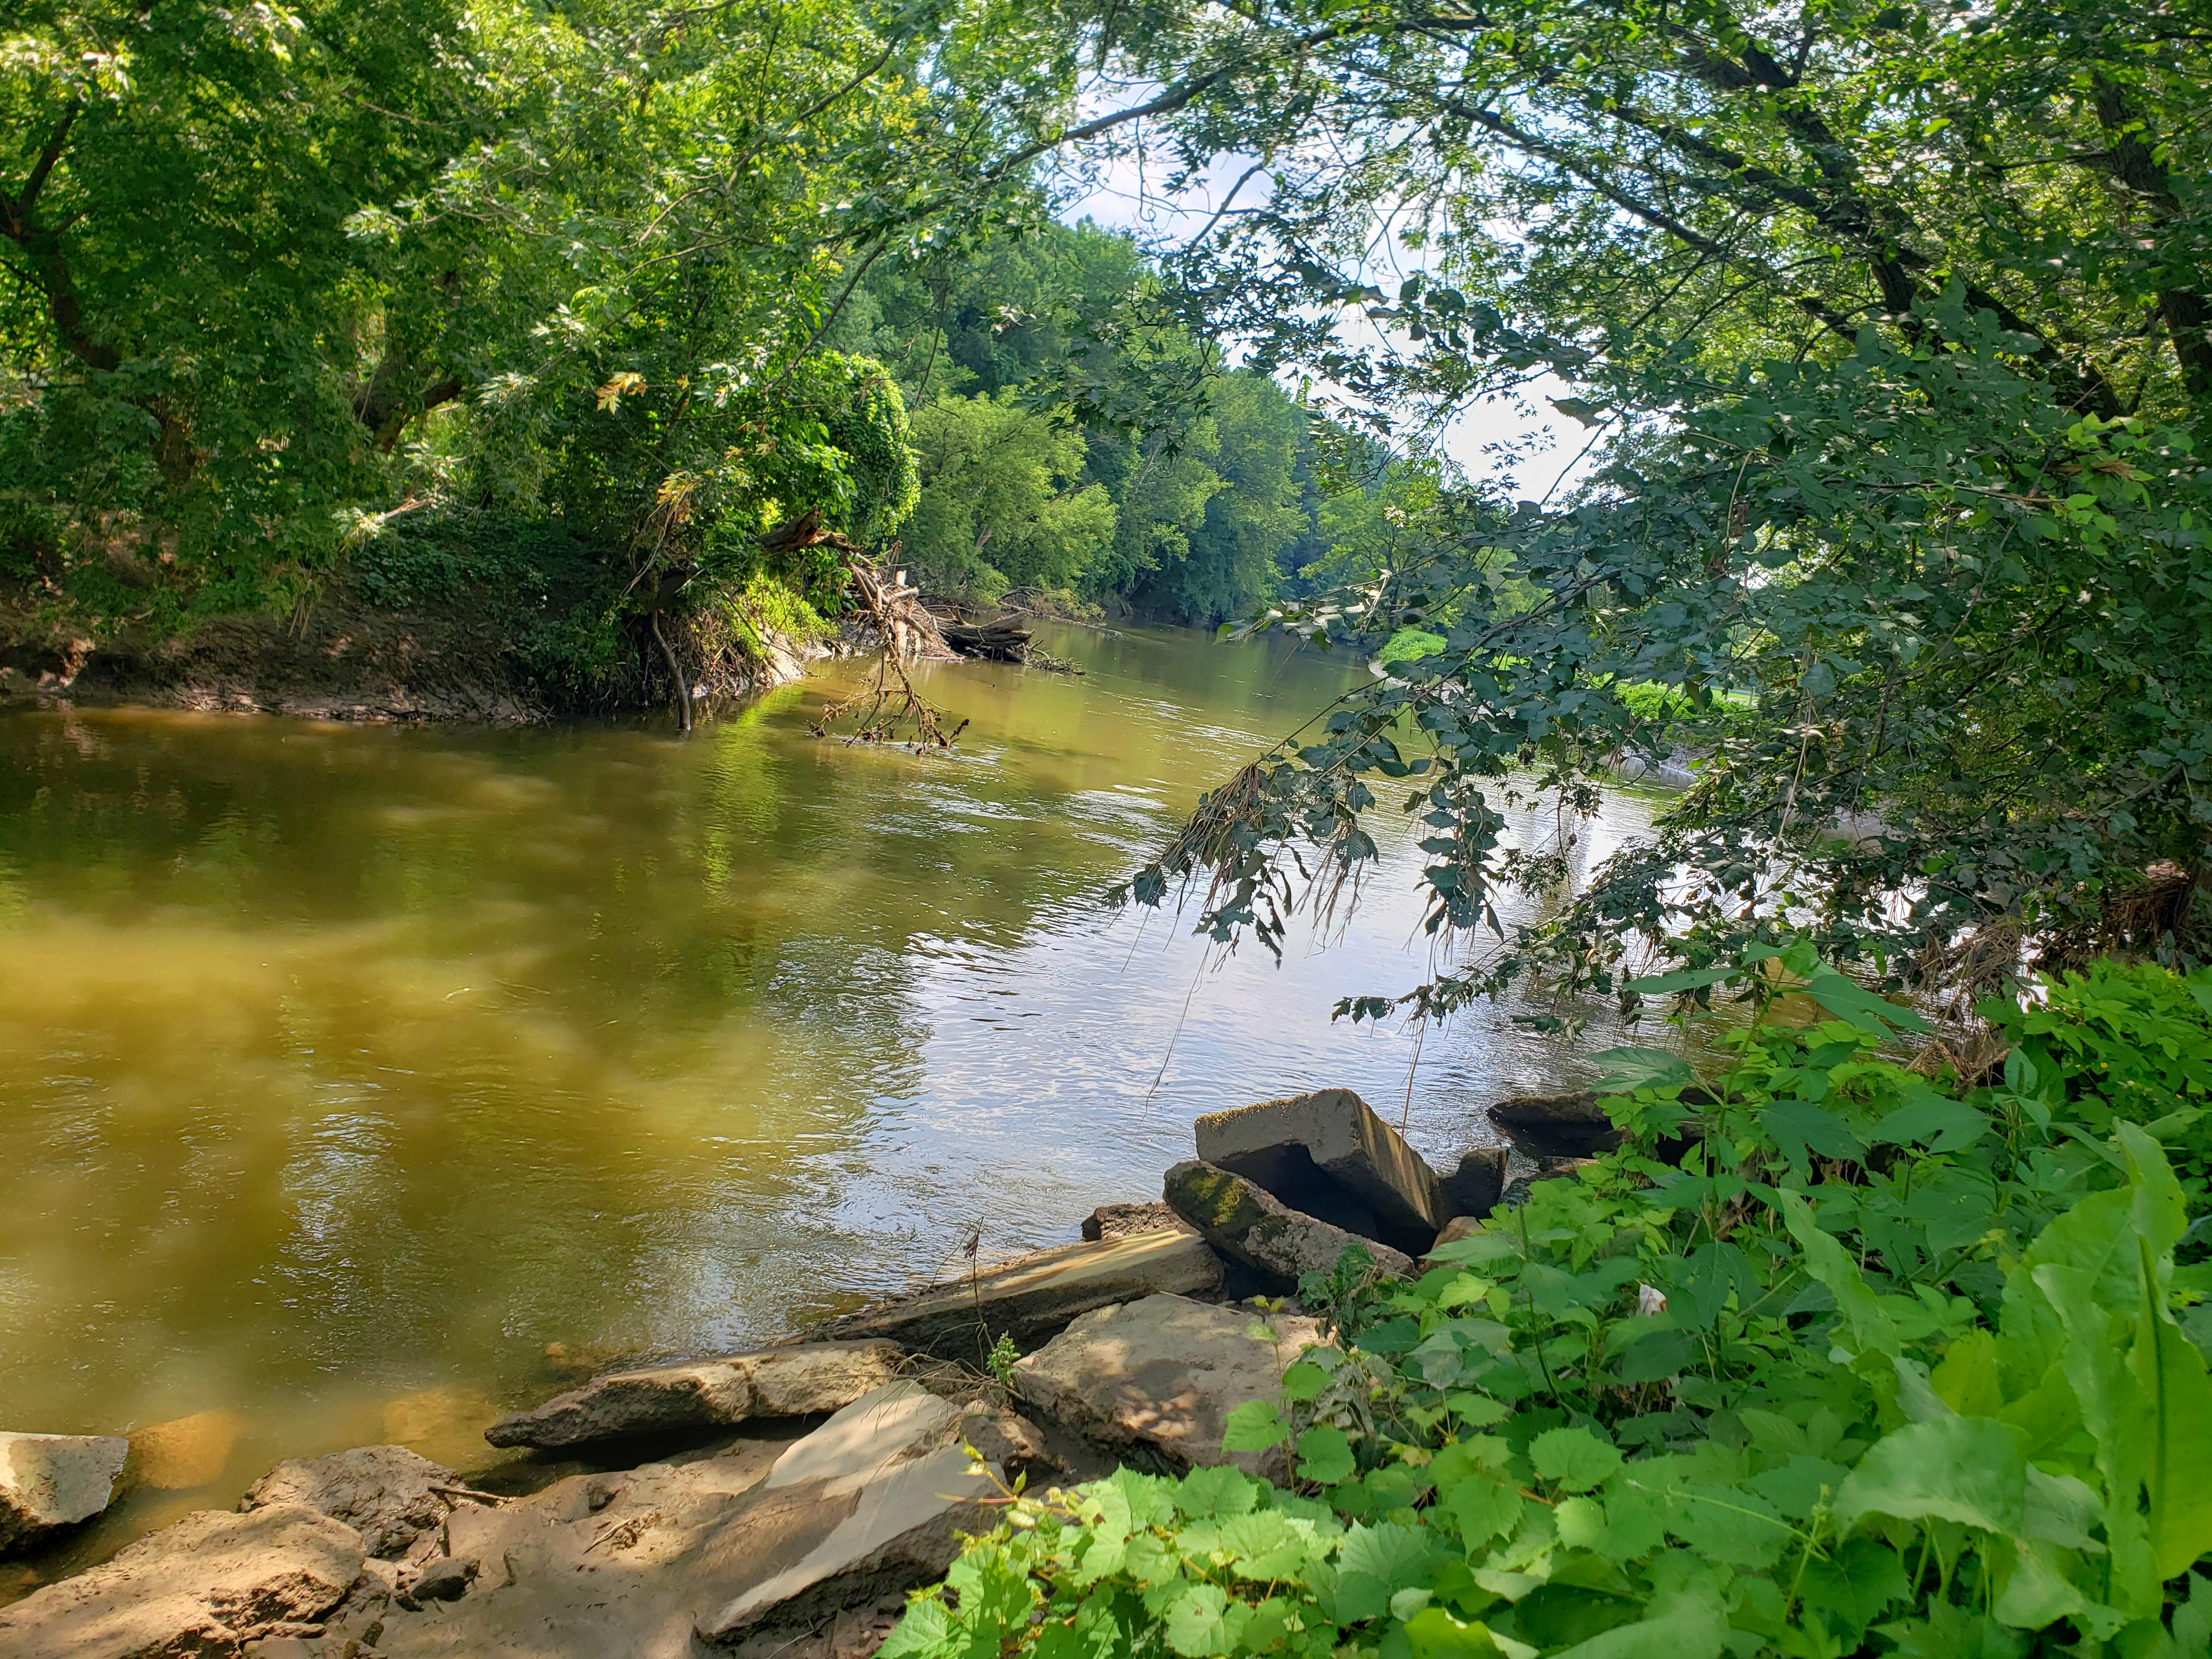 view of the Clinton River along the Don Green Way Nature Trail